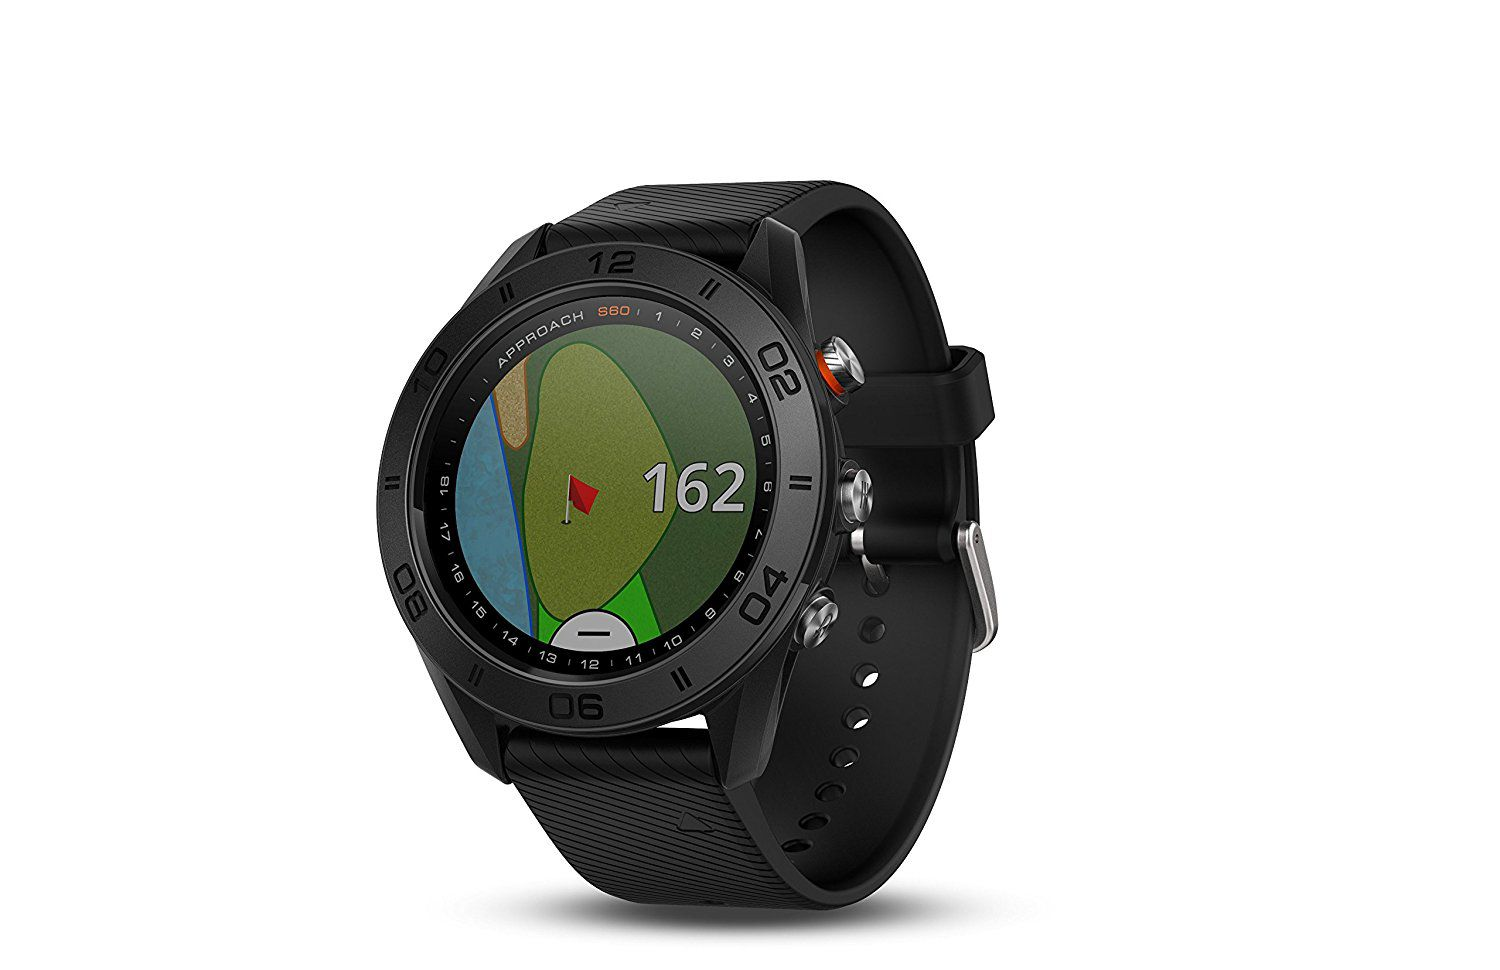 Best Golf Gps Watch 2020 The 7 Best Golf GPS Watches of 2019